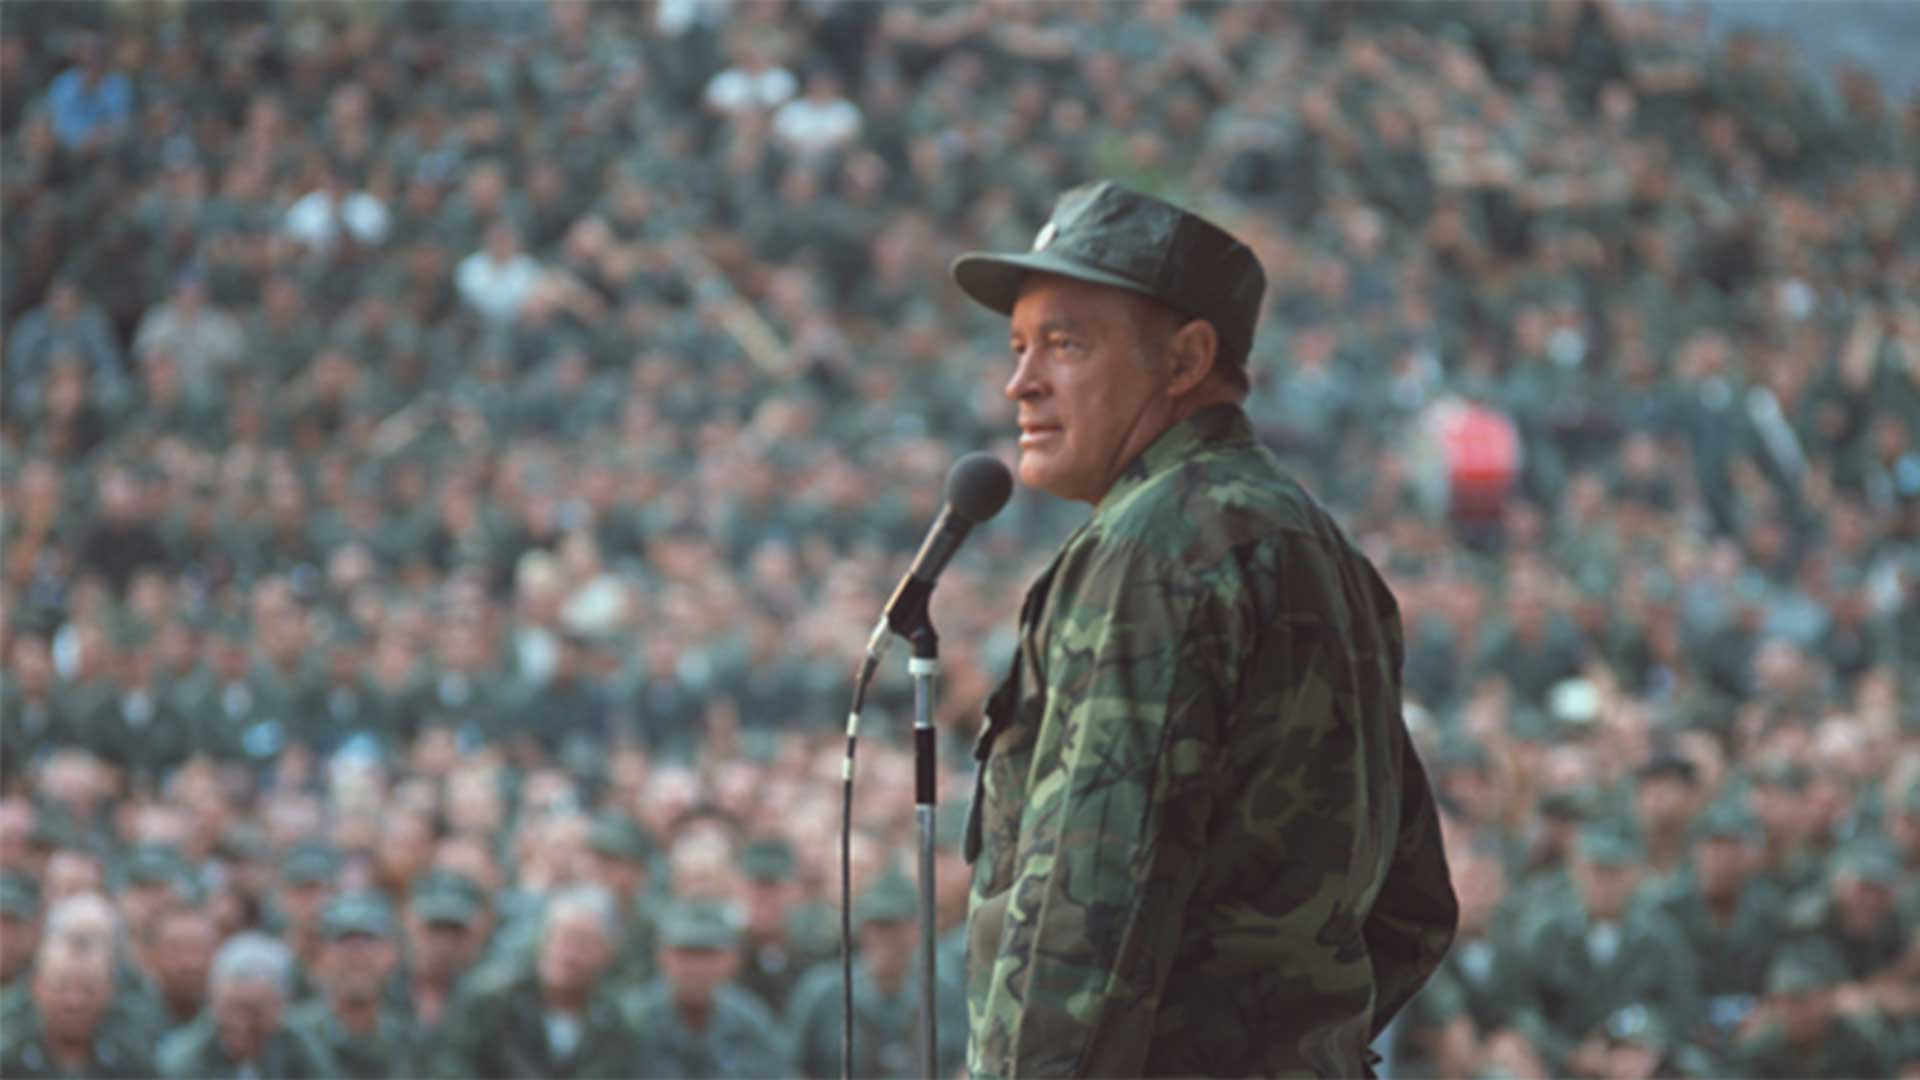 Bob Hope on stage entertaining the troops in Vietnam.